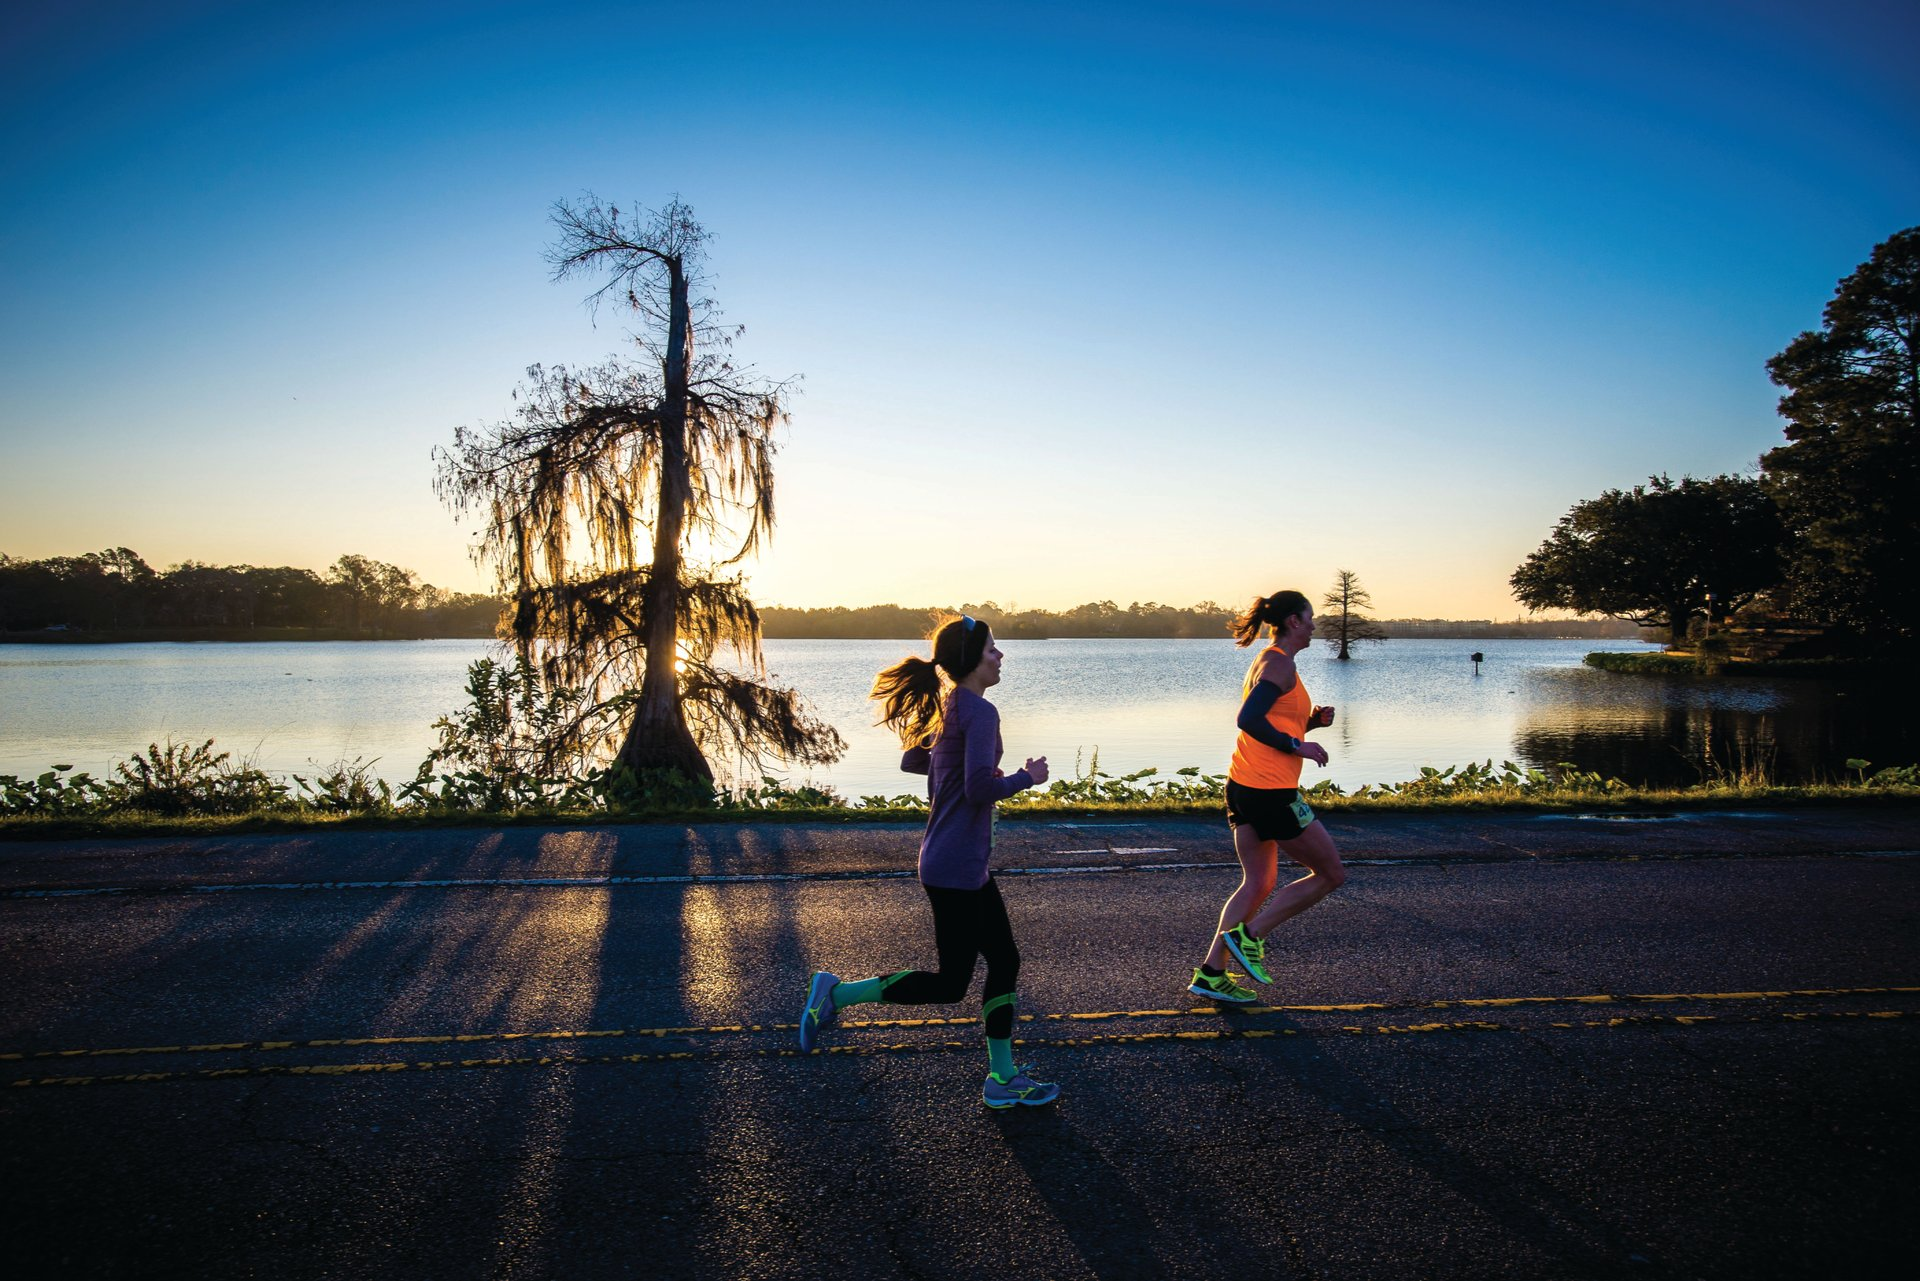 Louisiana Marathon in Louisiana - Best Season 2020